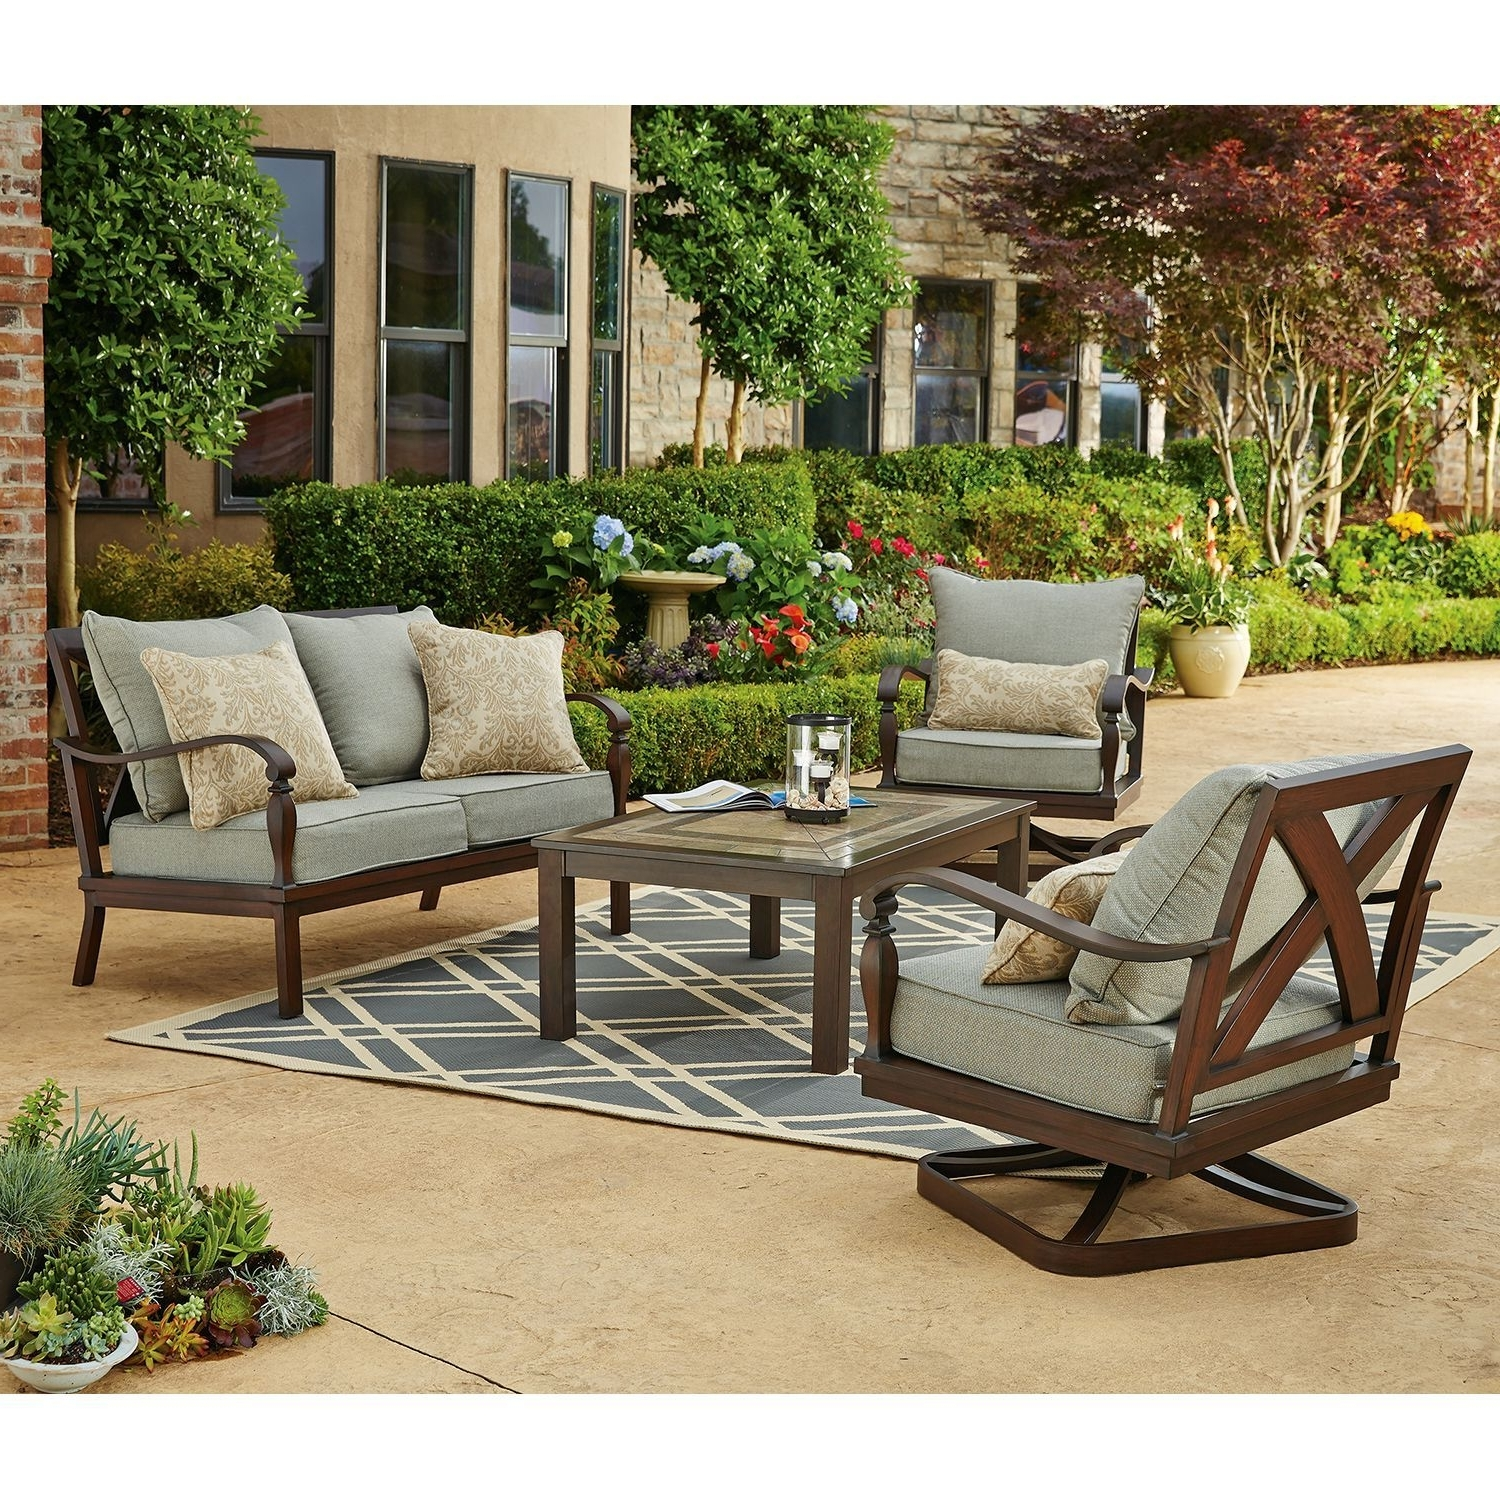 Patios, Outdoor Living And Yard Inside Patio Conversation Sets With Rockers (View 12 of 15)